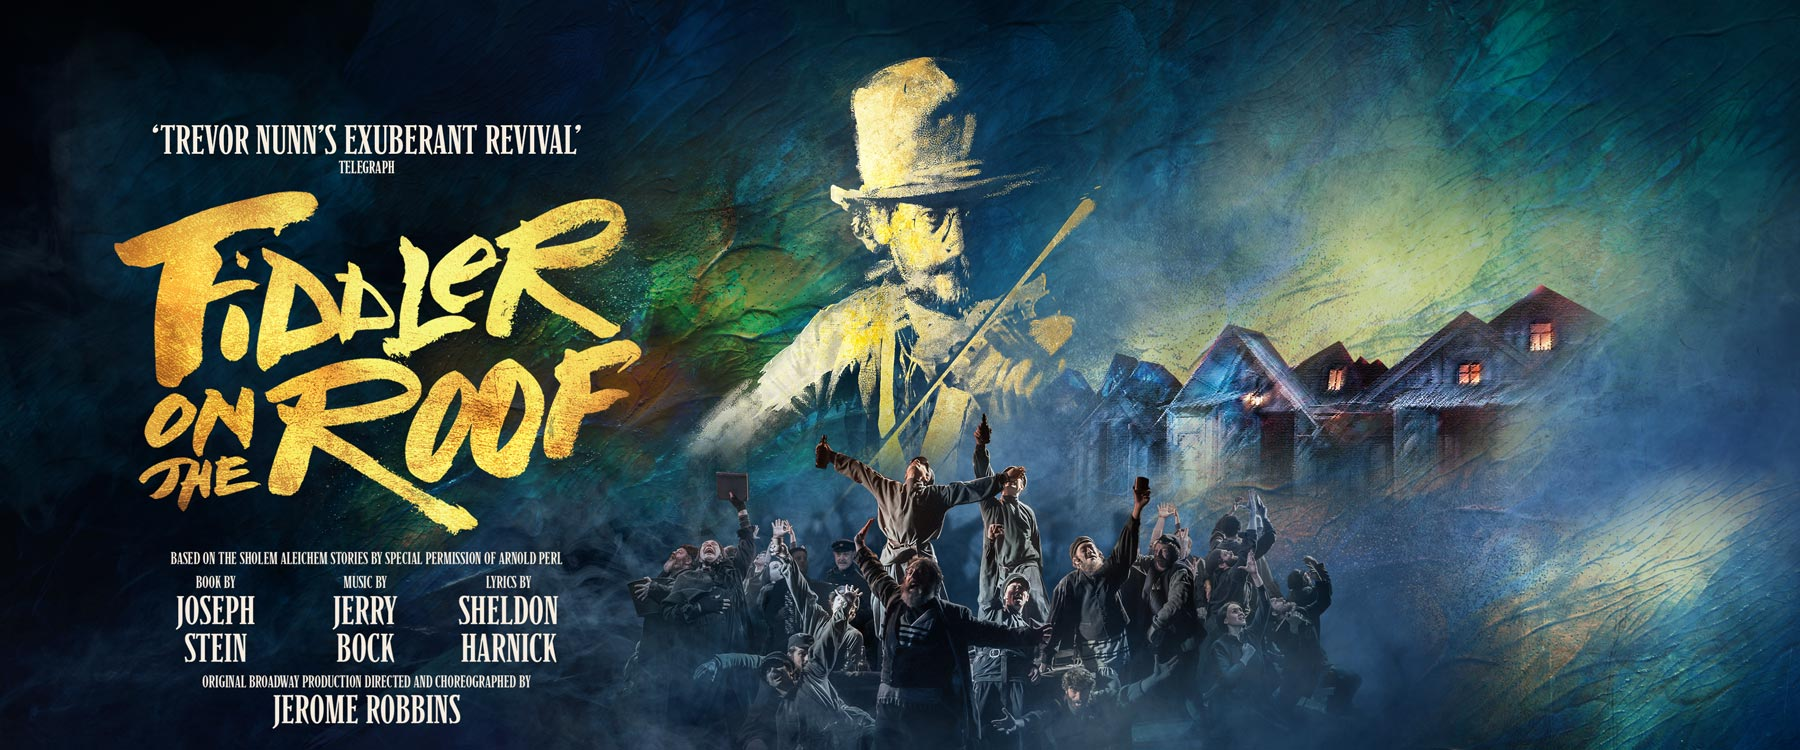 Fiddler-on-the-Roof-West-End-Musical Desktop Banner new